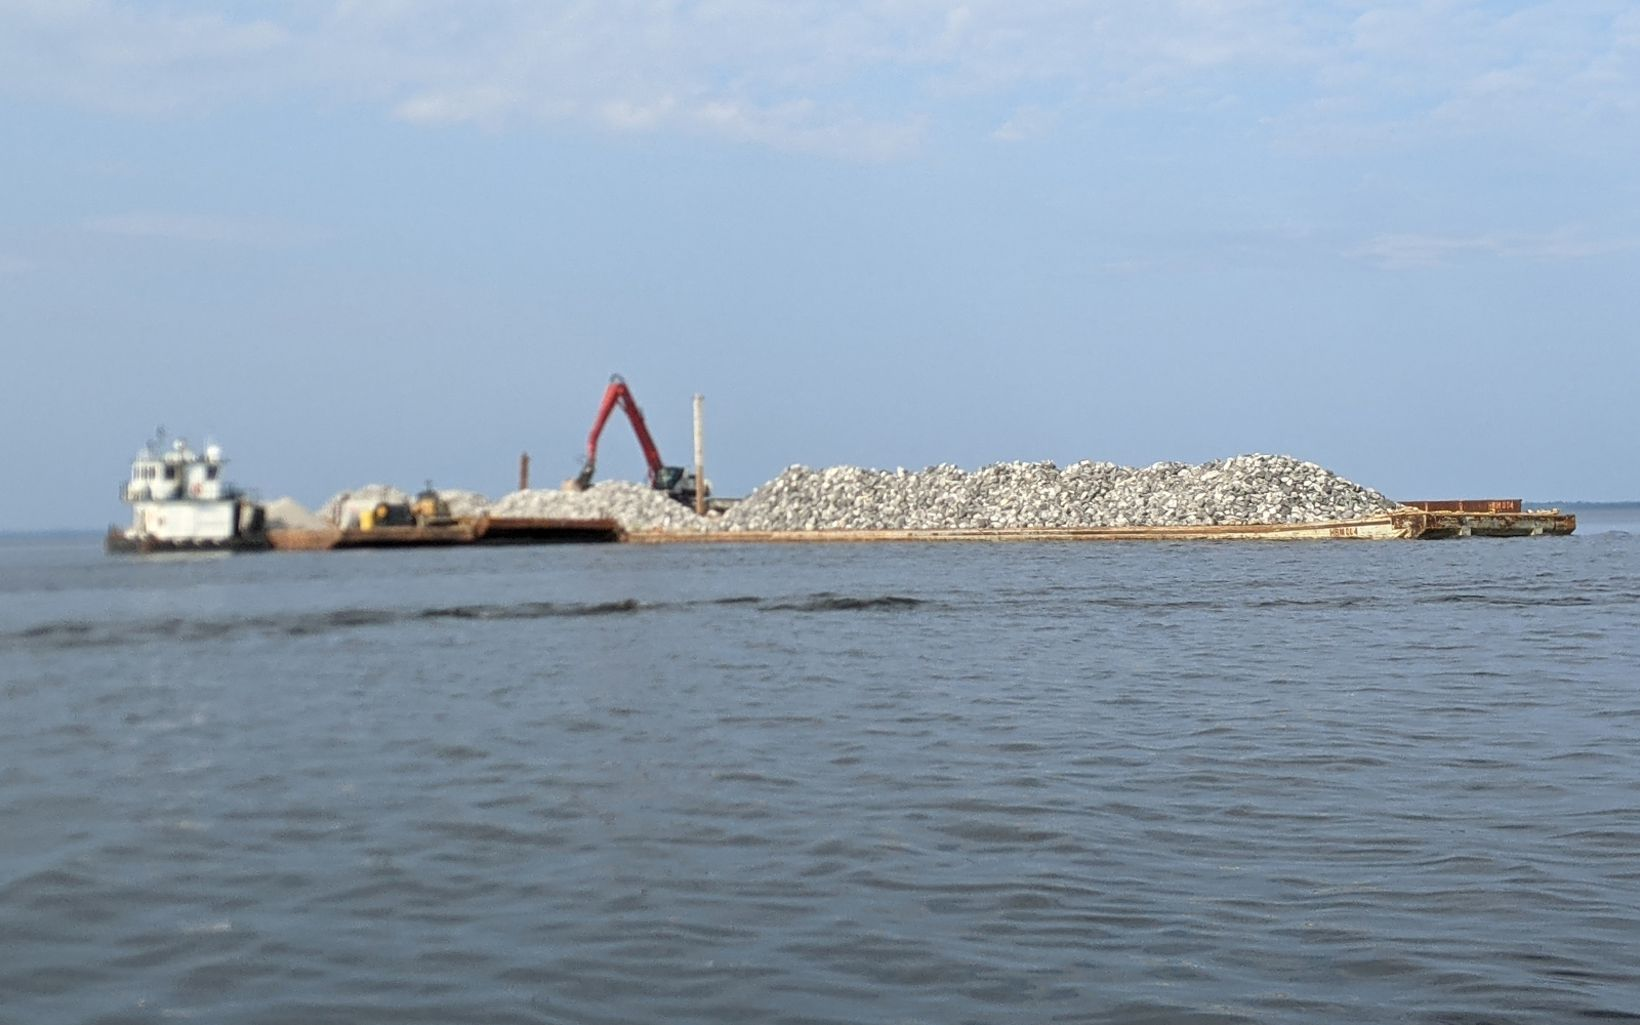 Barge containing limestone rock with an excavator in the bay.